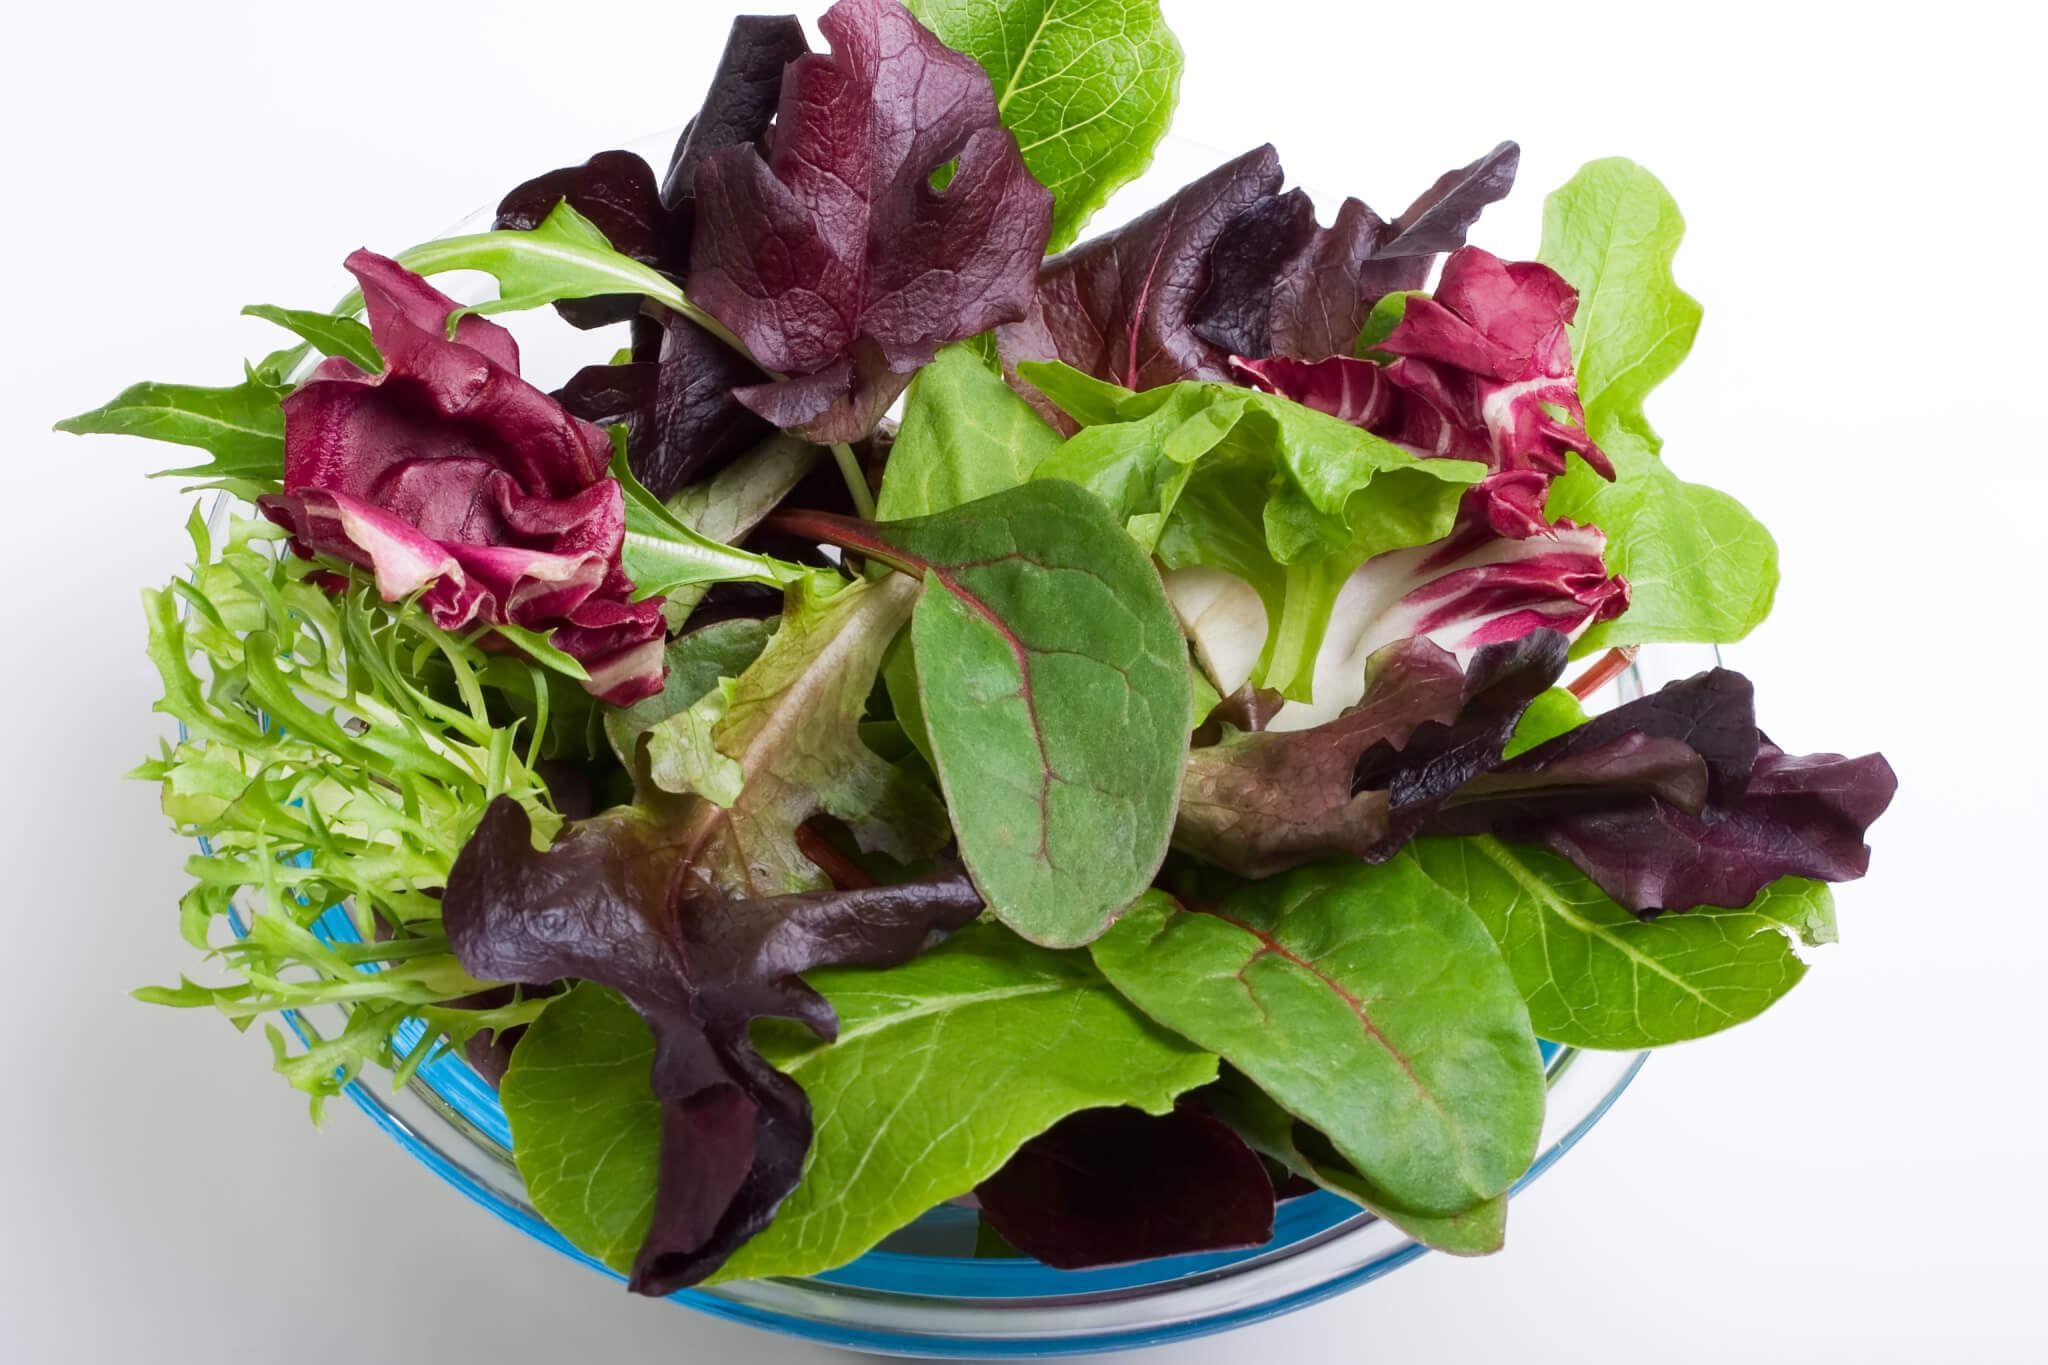 Leafy Vegetables | Gundry MD